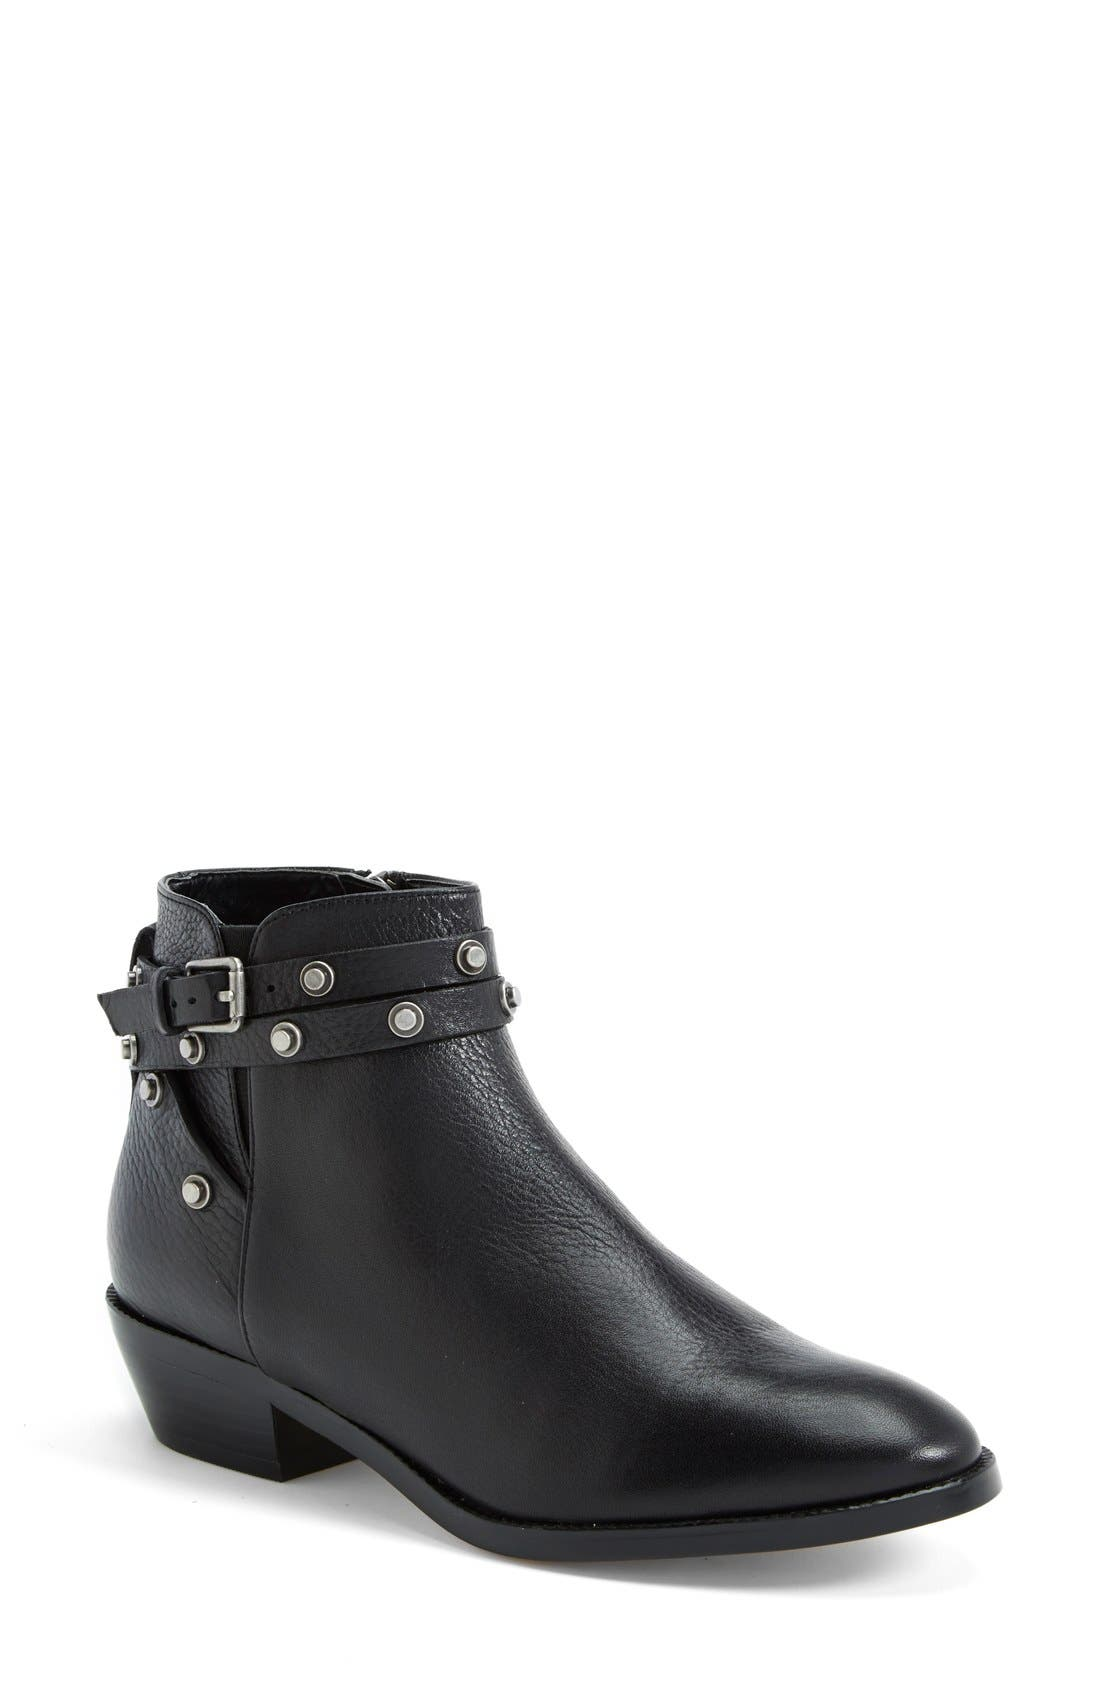 Main Image - Halogen 'Lidia' Studded Leather Ankle Bootie (Women)